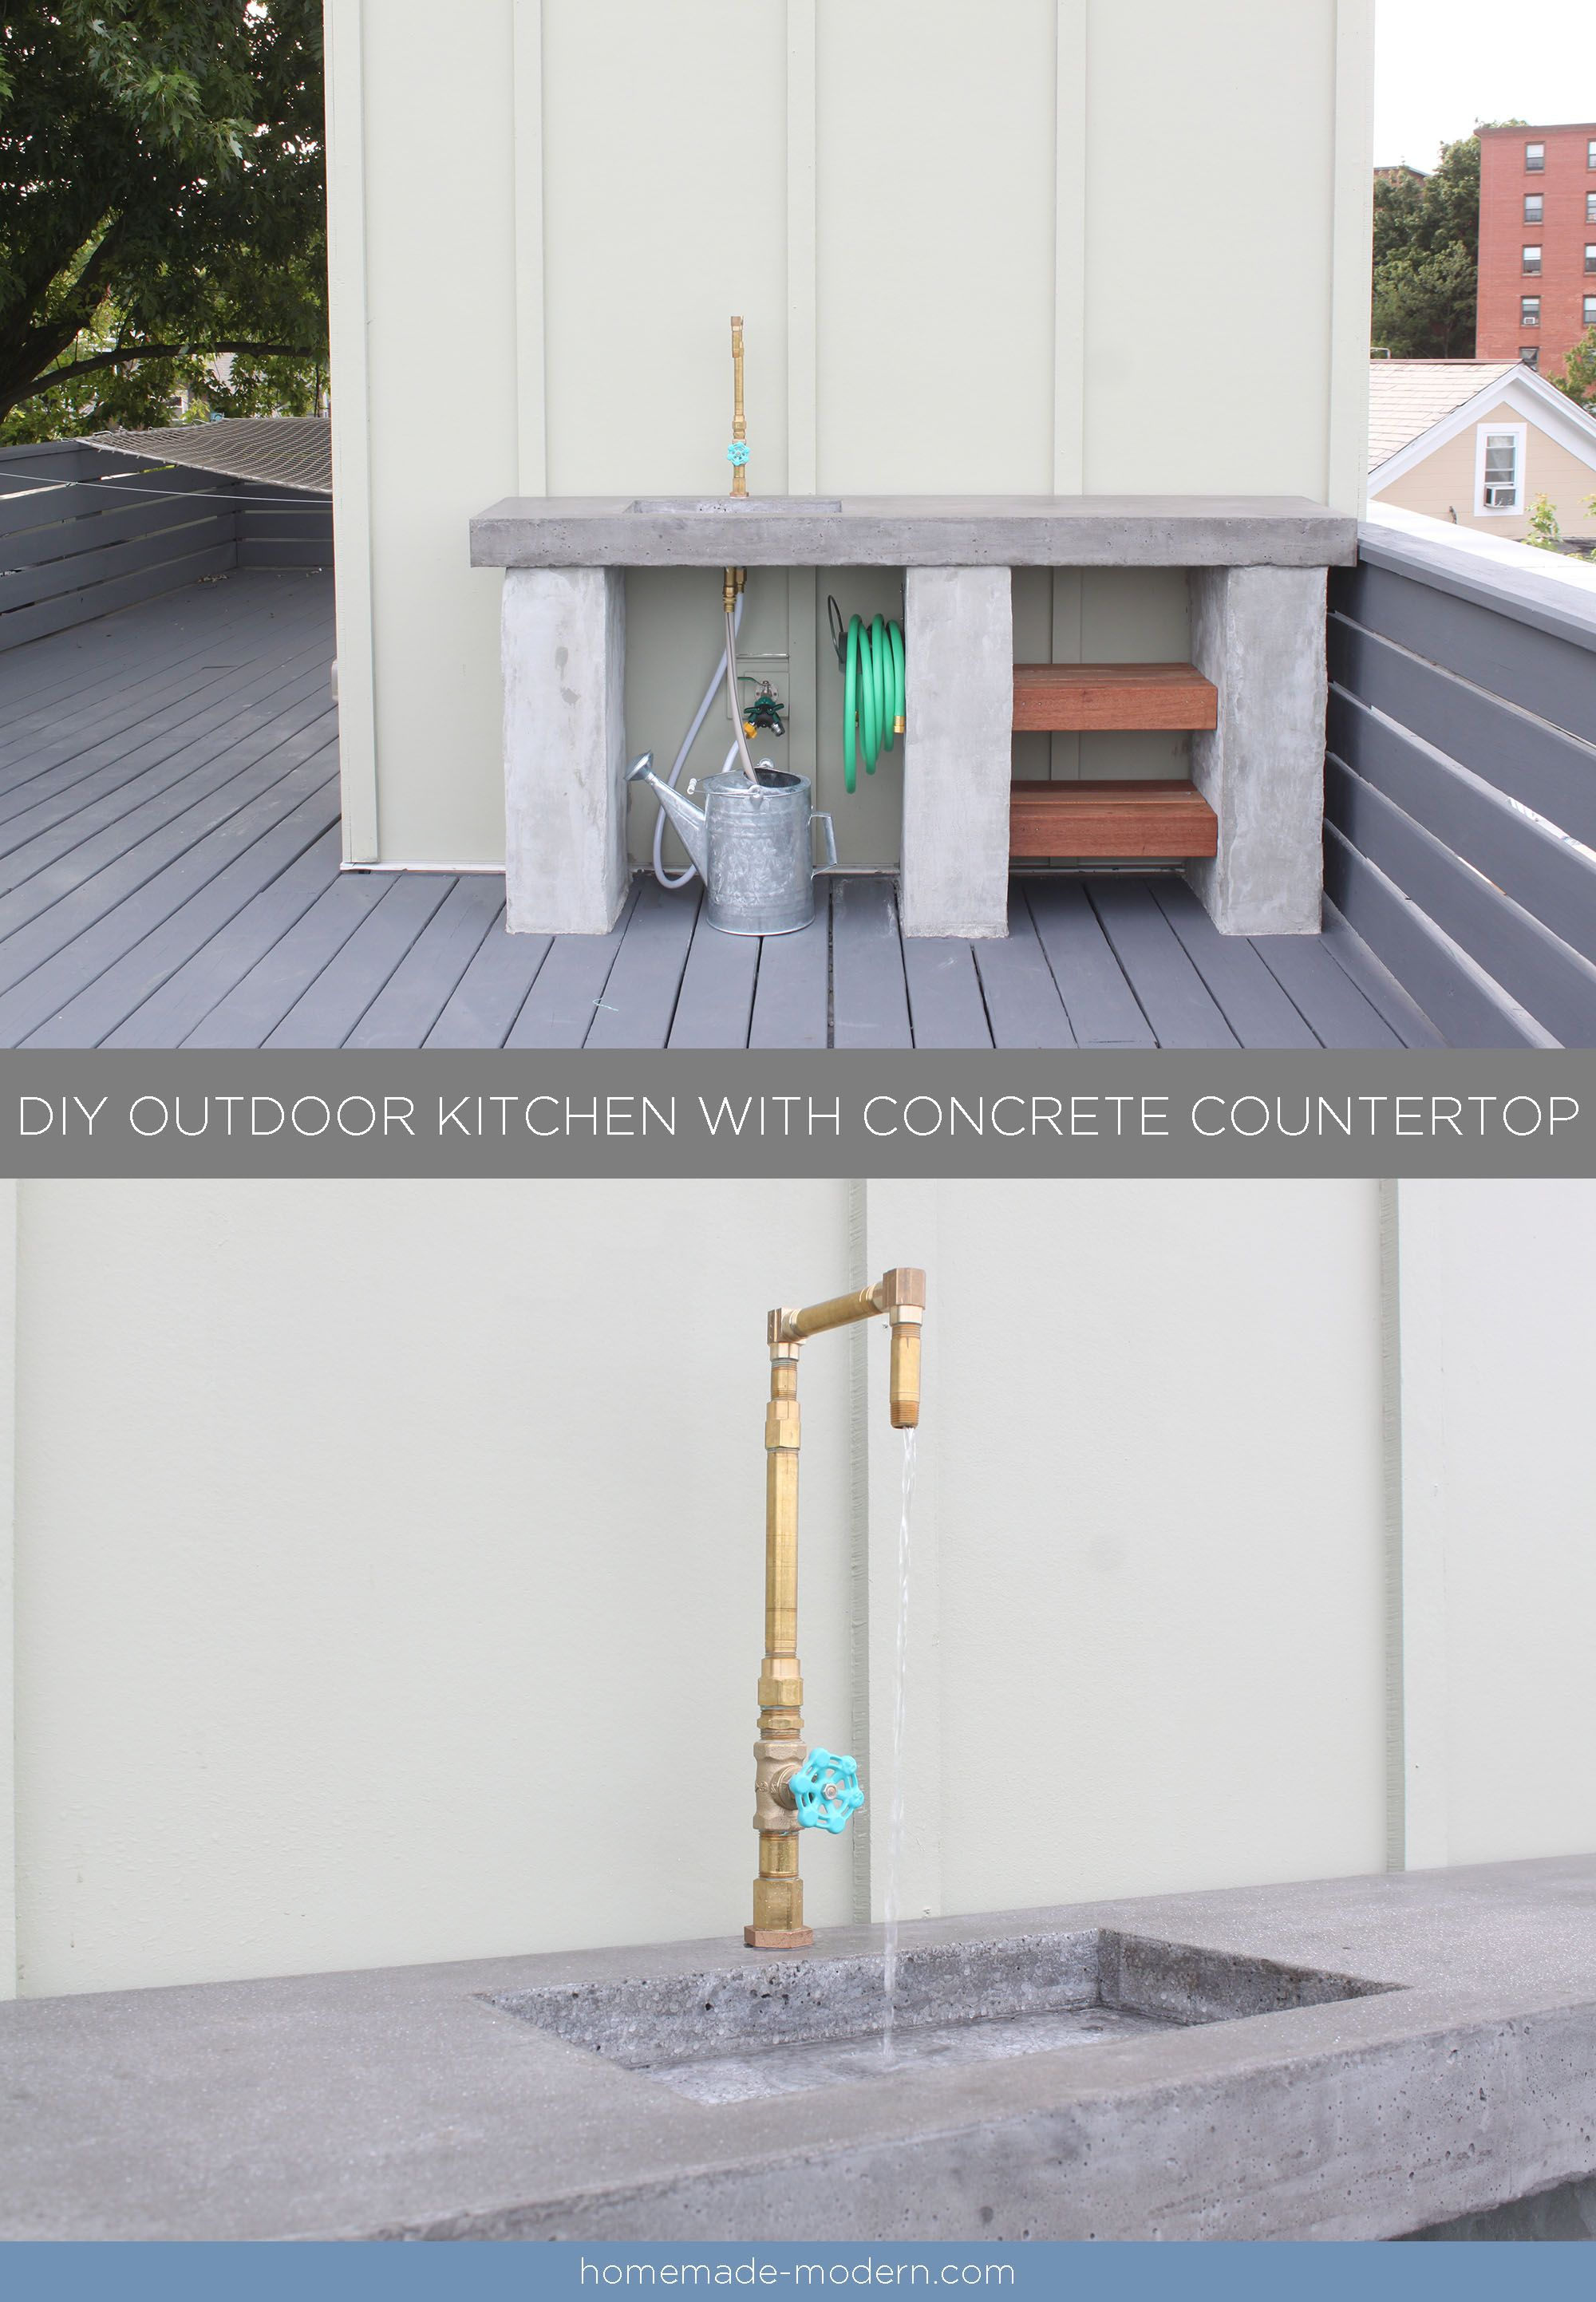 This DIY Outdoor Kitchen with Concrete Countertop is convenient for your deck, patio or outdoor garden. Full instructions can be found at HomeMade-Modern.com